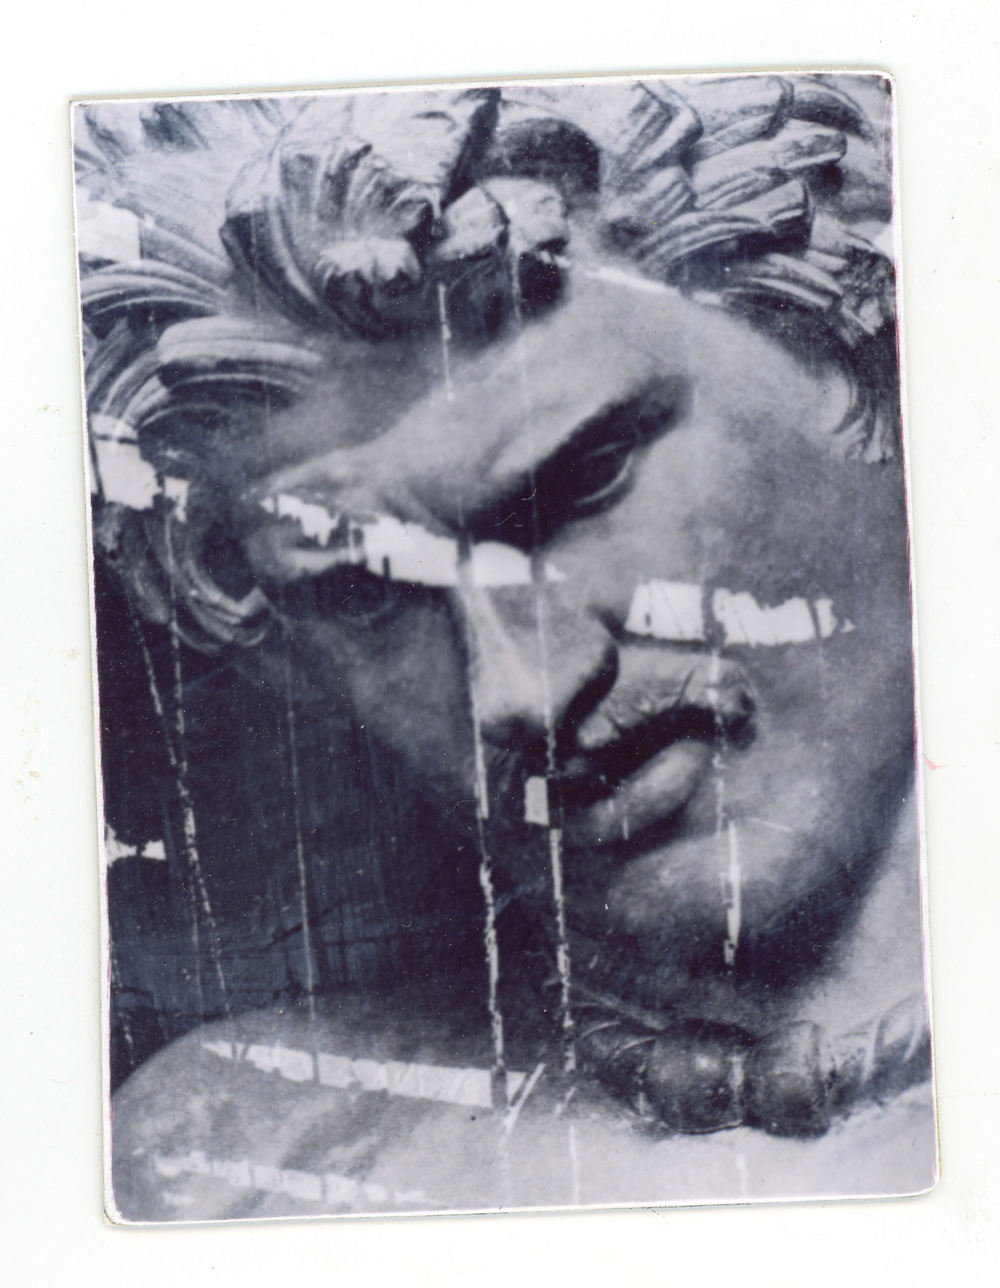 Gaul Experiment (Unique polaroid print, created with Daylab Copy System & mounted on cardstock)